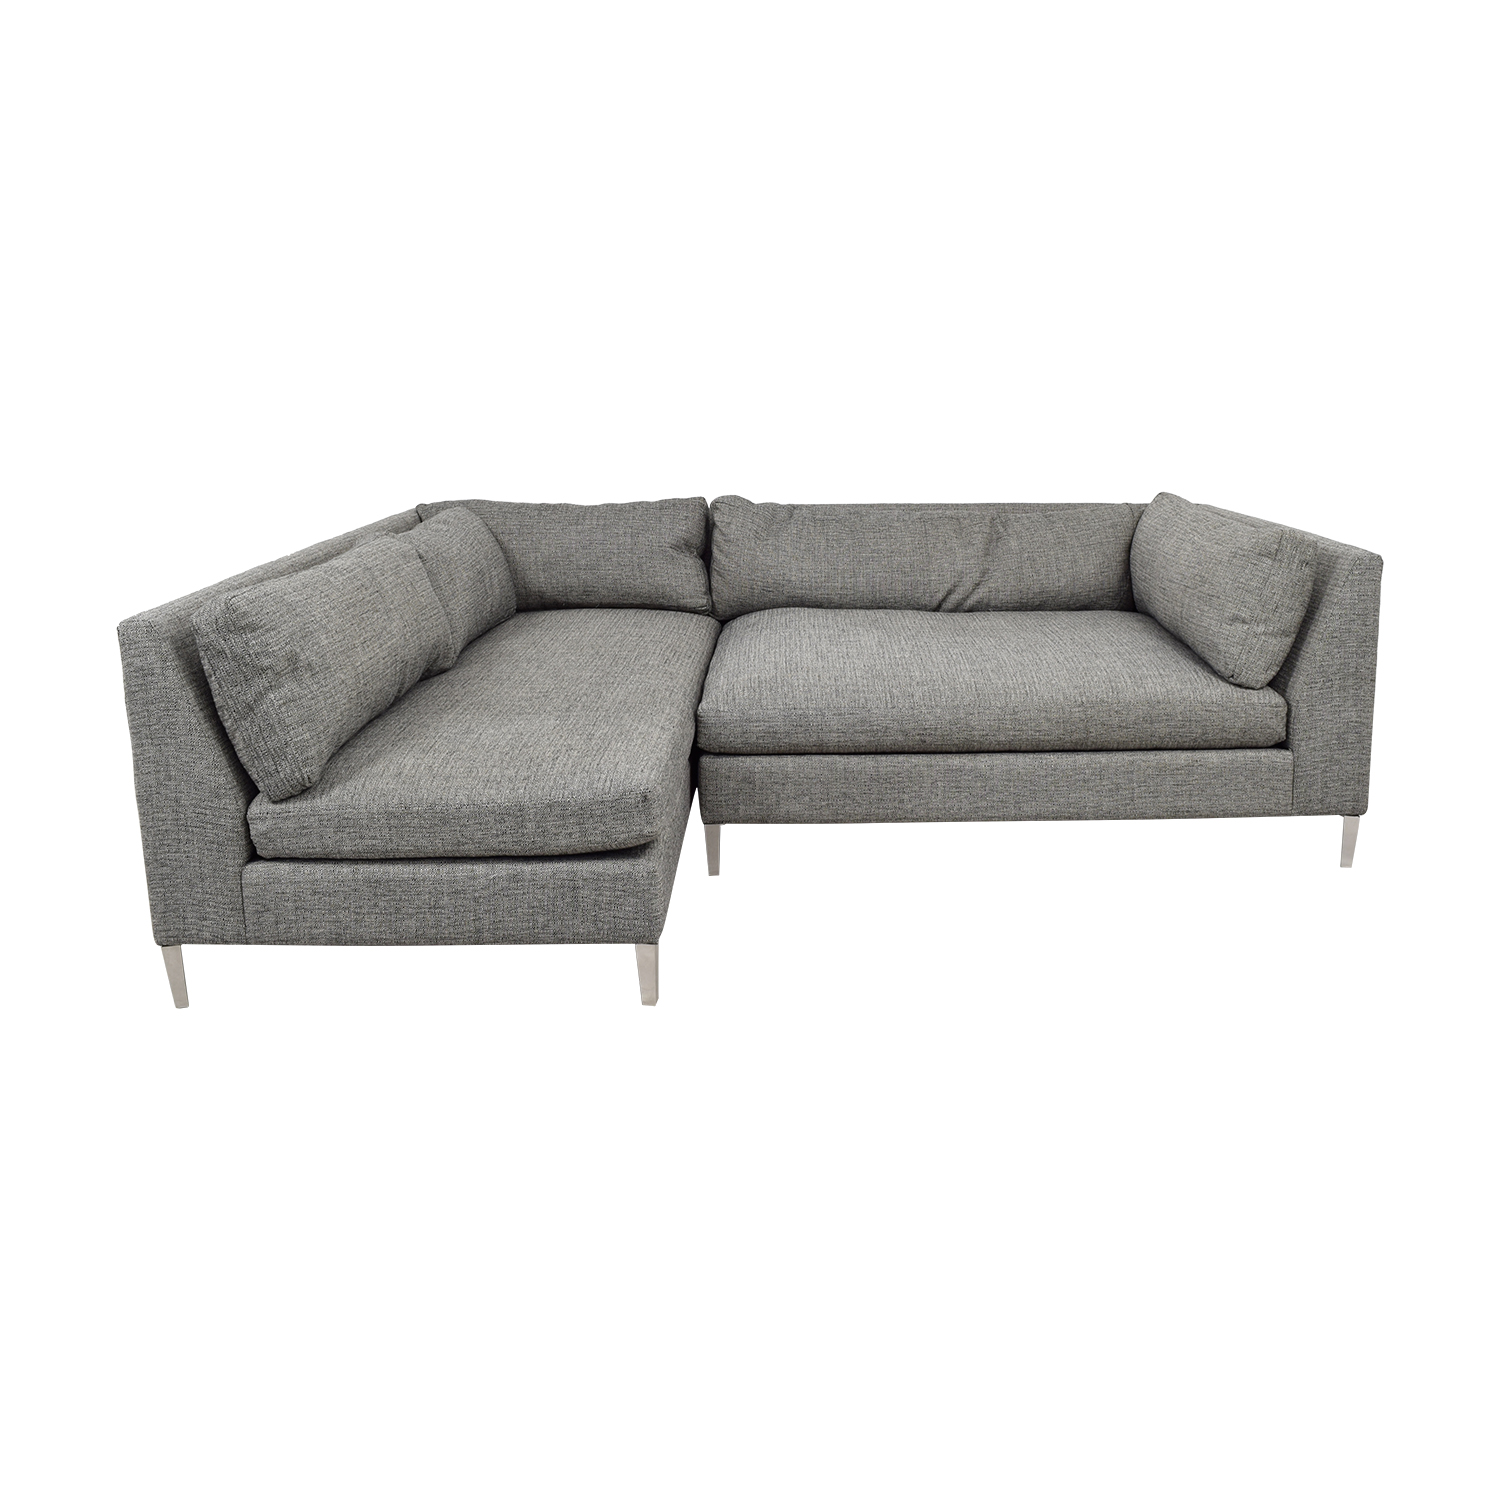 42 Off Cb2 Decker Grey Two Piece Sectional Sofa Sofas